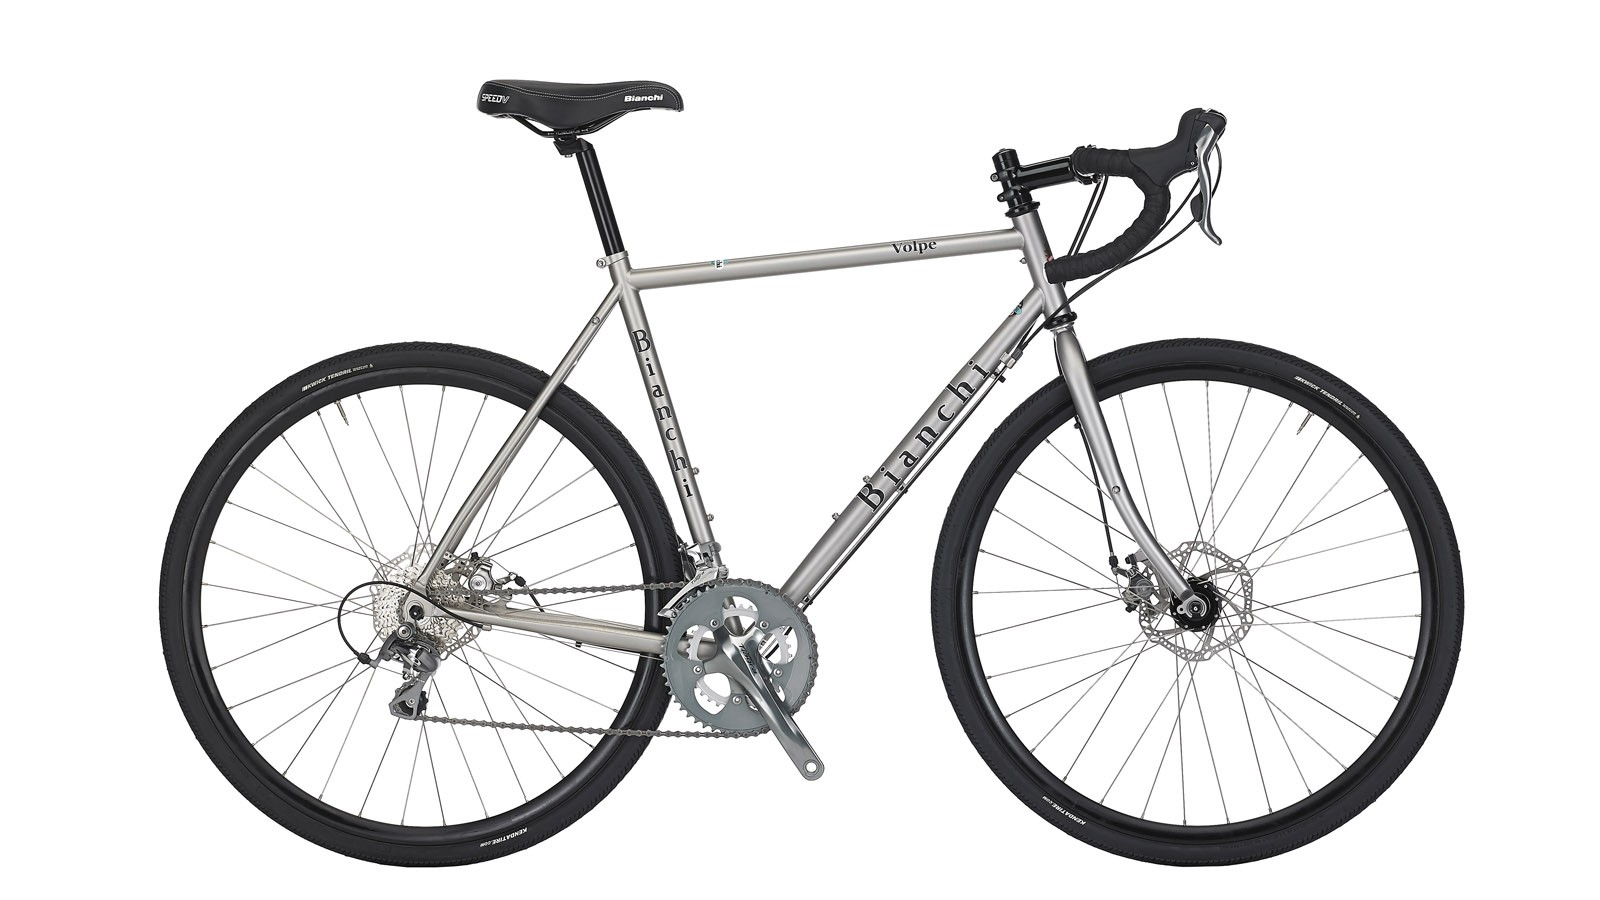 The £1,150 Bianchi Volpe disc